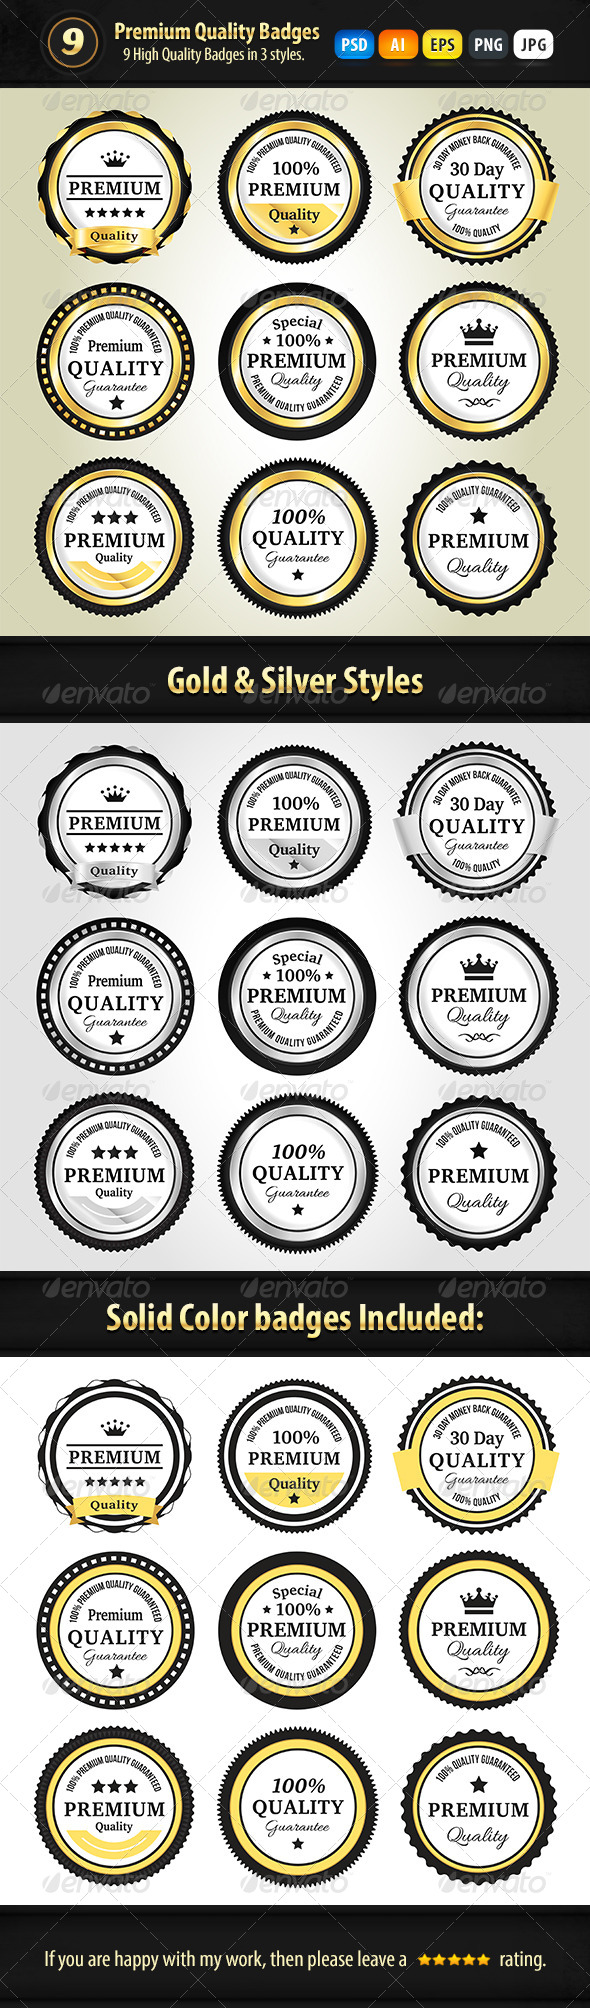 GraphicRiver Premium Quality Badges In 3 Styles 7517879